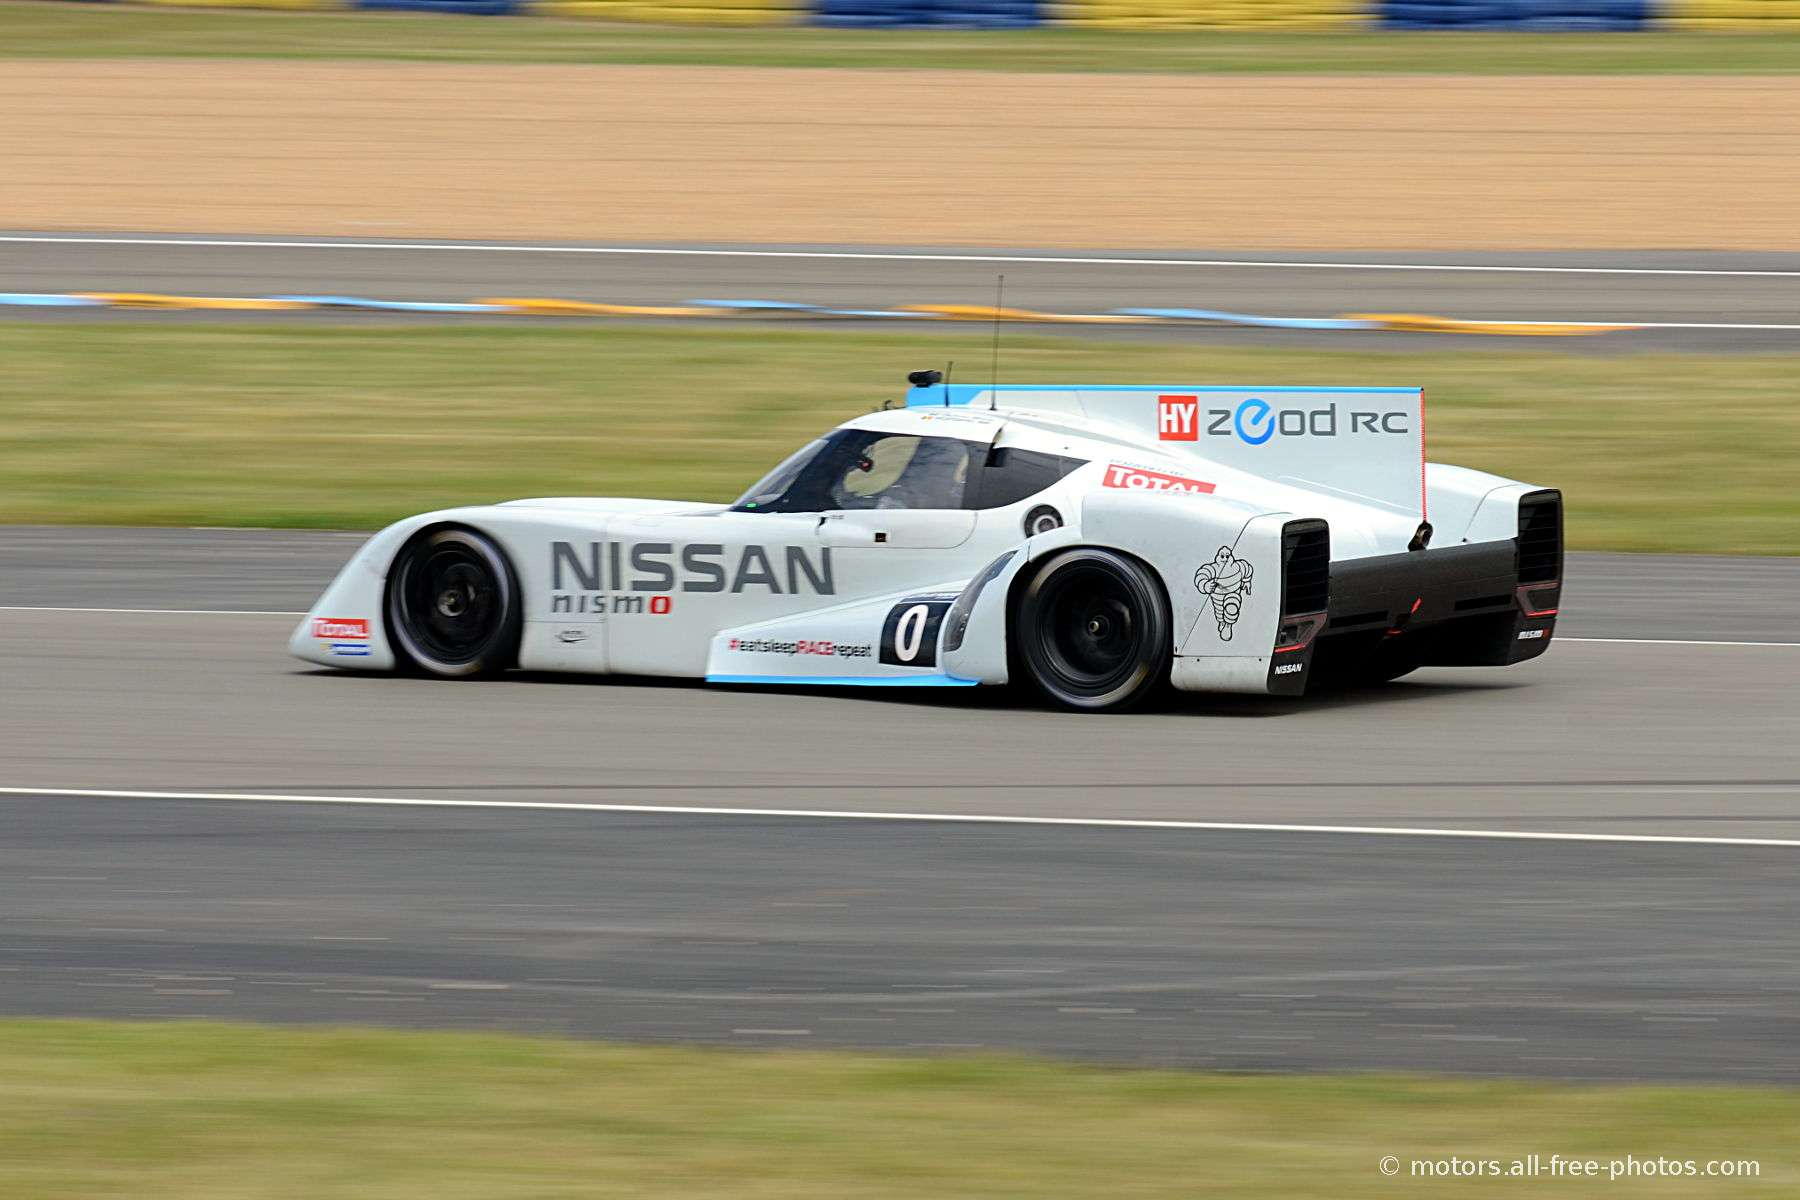 Nissan ZEOD RC - Team Nissan Motorsport Global